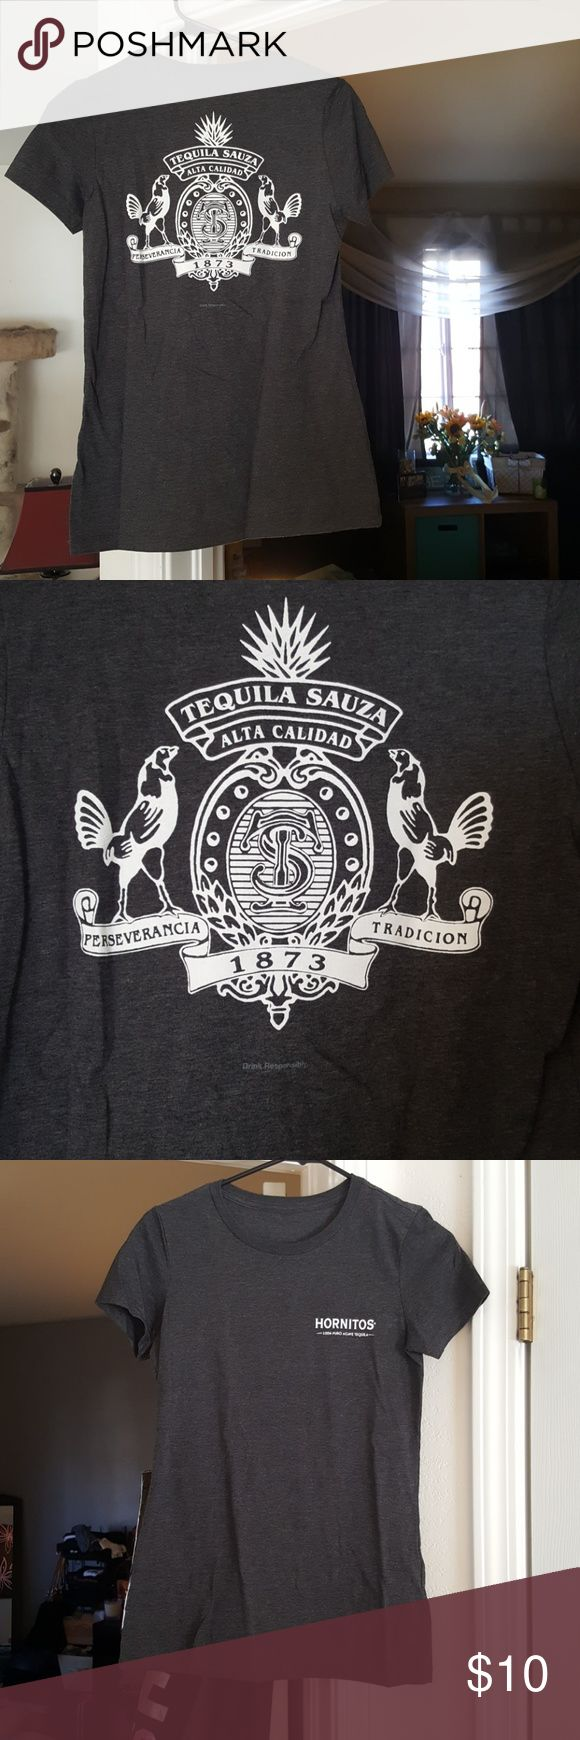 Hornitos tequila t-shirt Never worn Tops